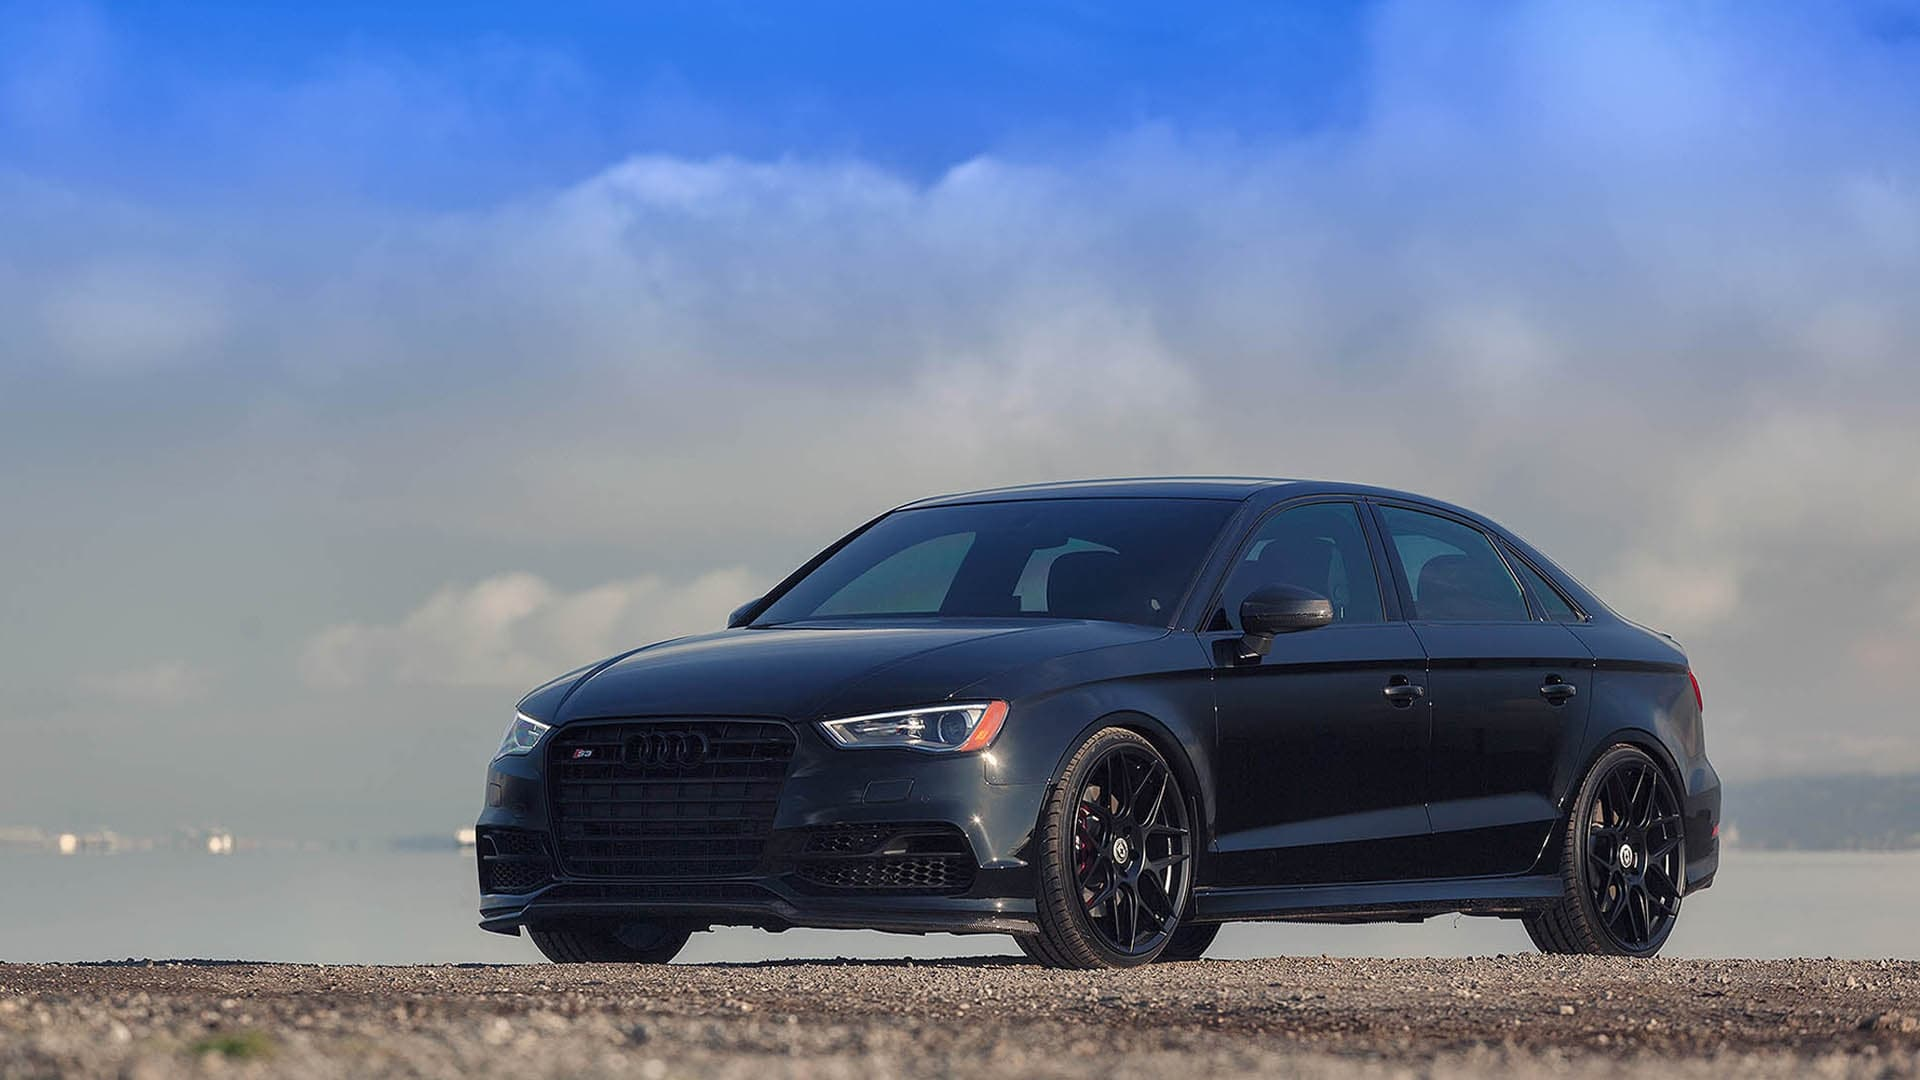 Audi S3 Wallpaper Girl 2016 Audi S3 Sedan Wallpapers High Quality Resolution Download